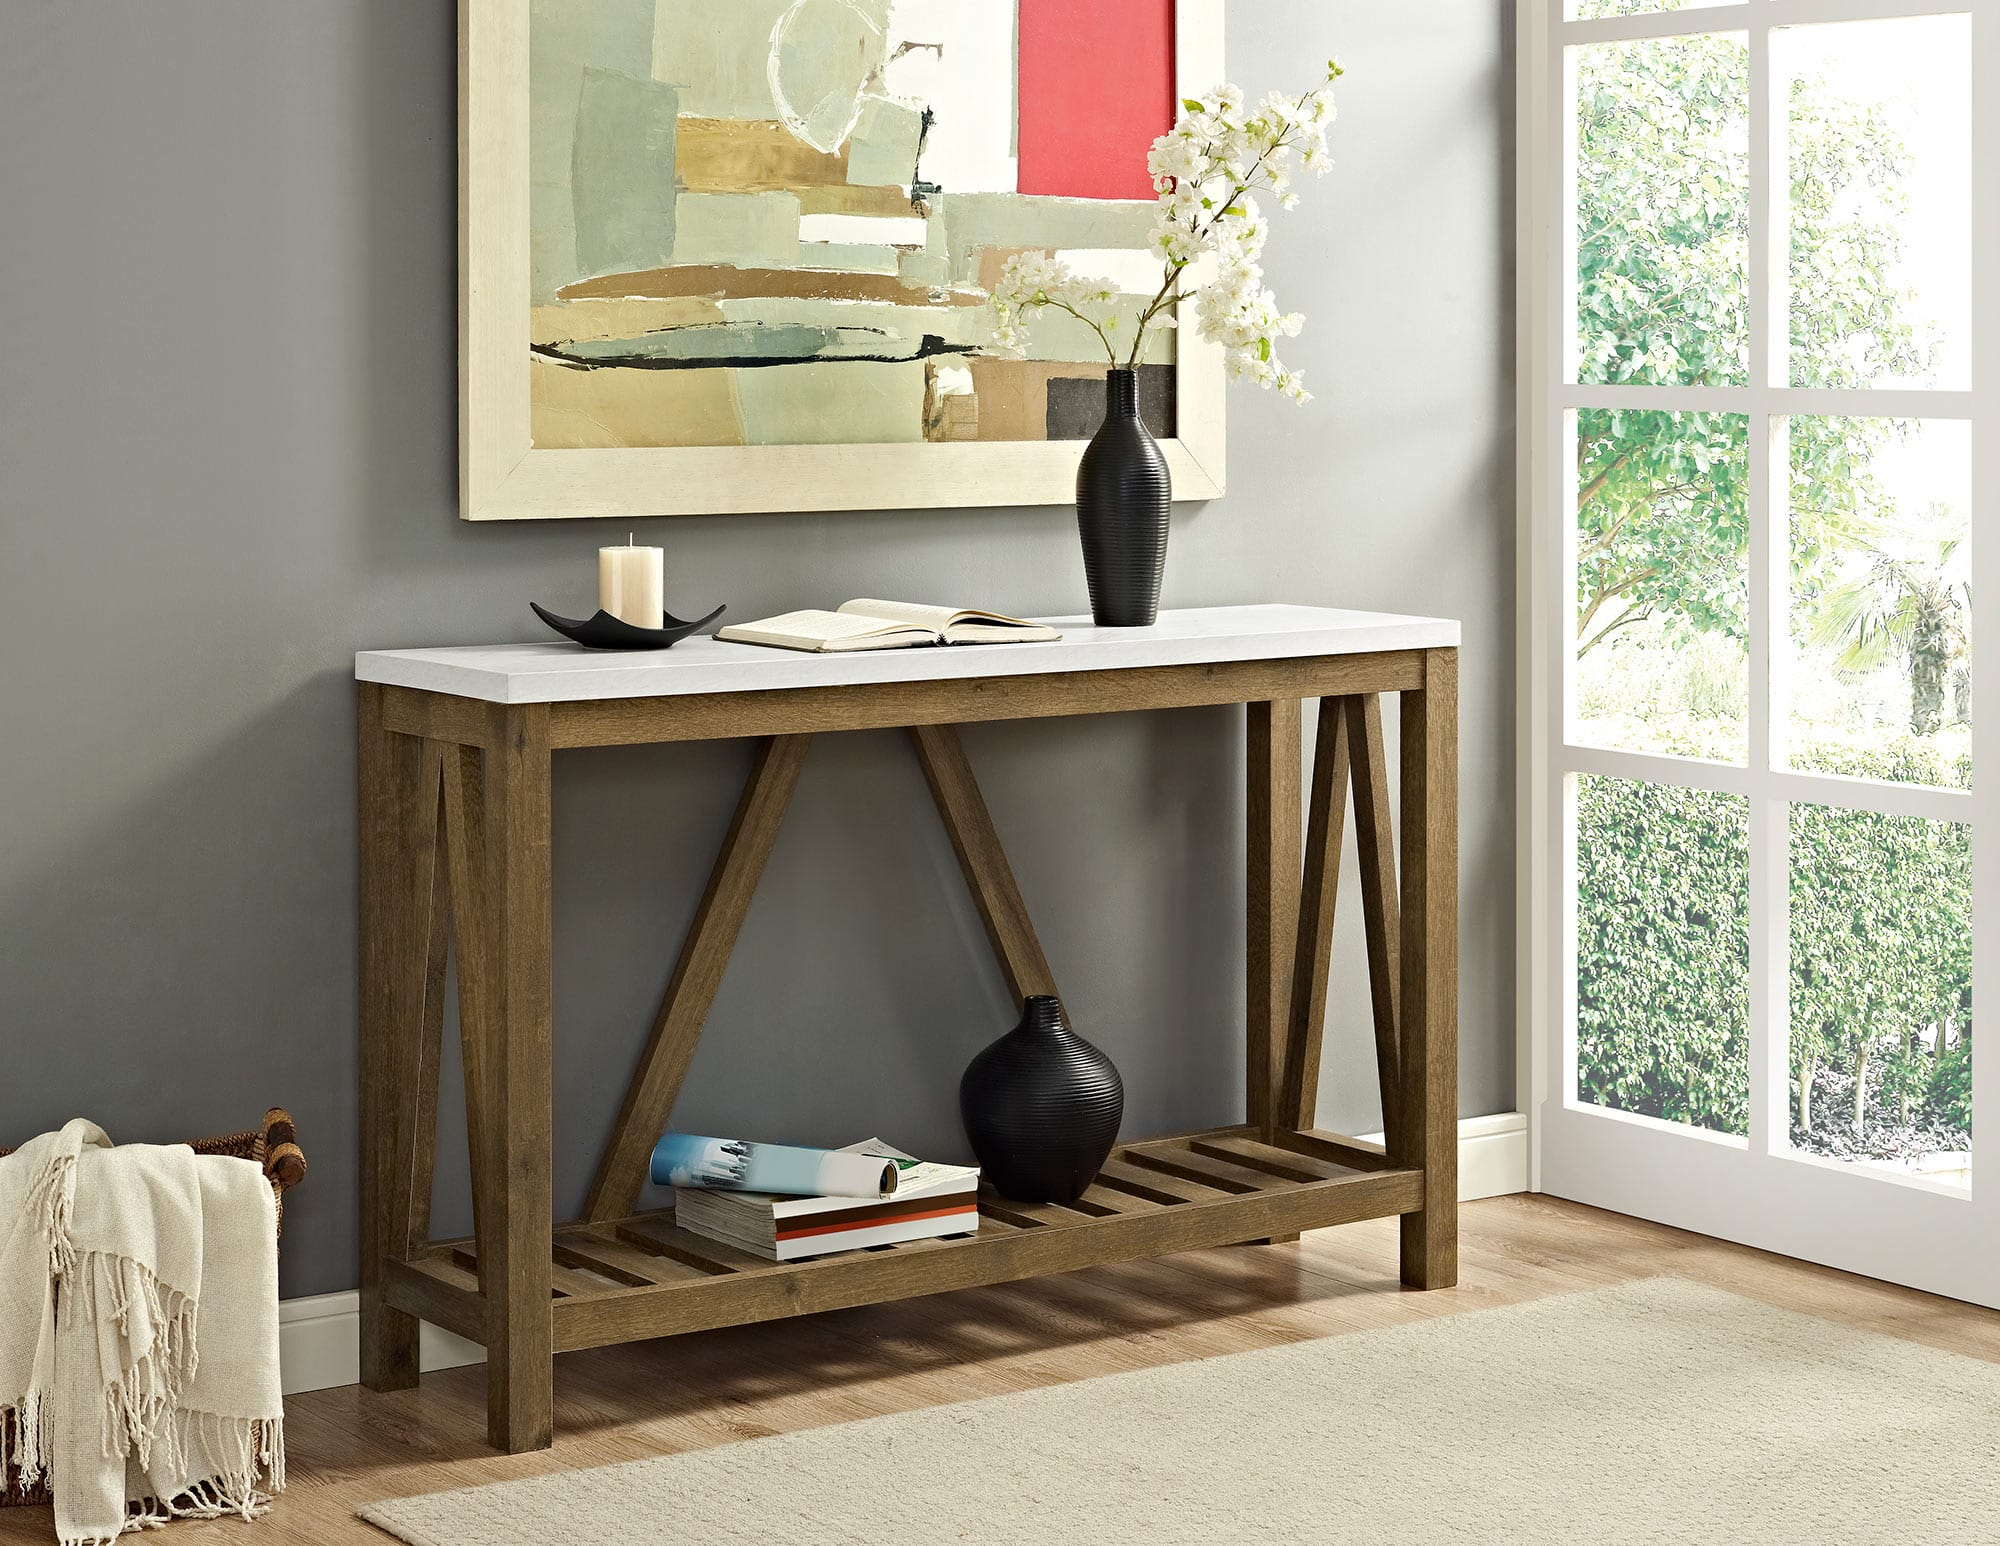 52 Inch A-Frame Rustic Entry Console Table - Marble/Walnut by Walker ...